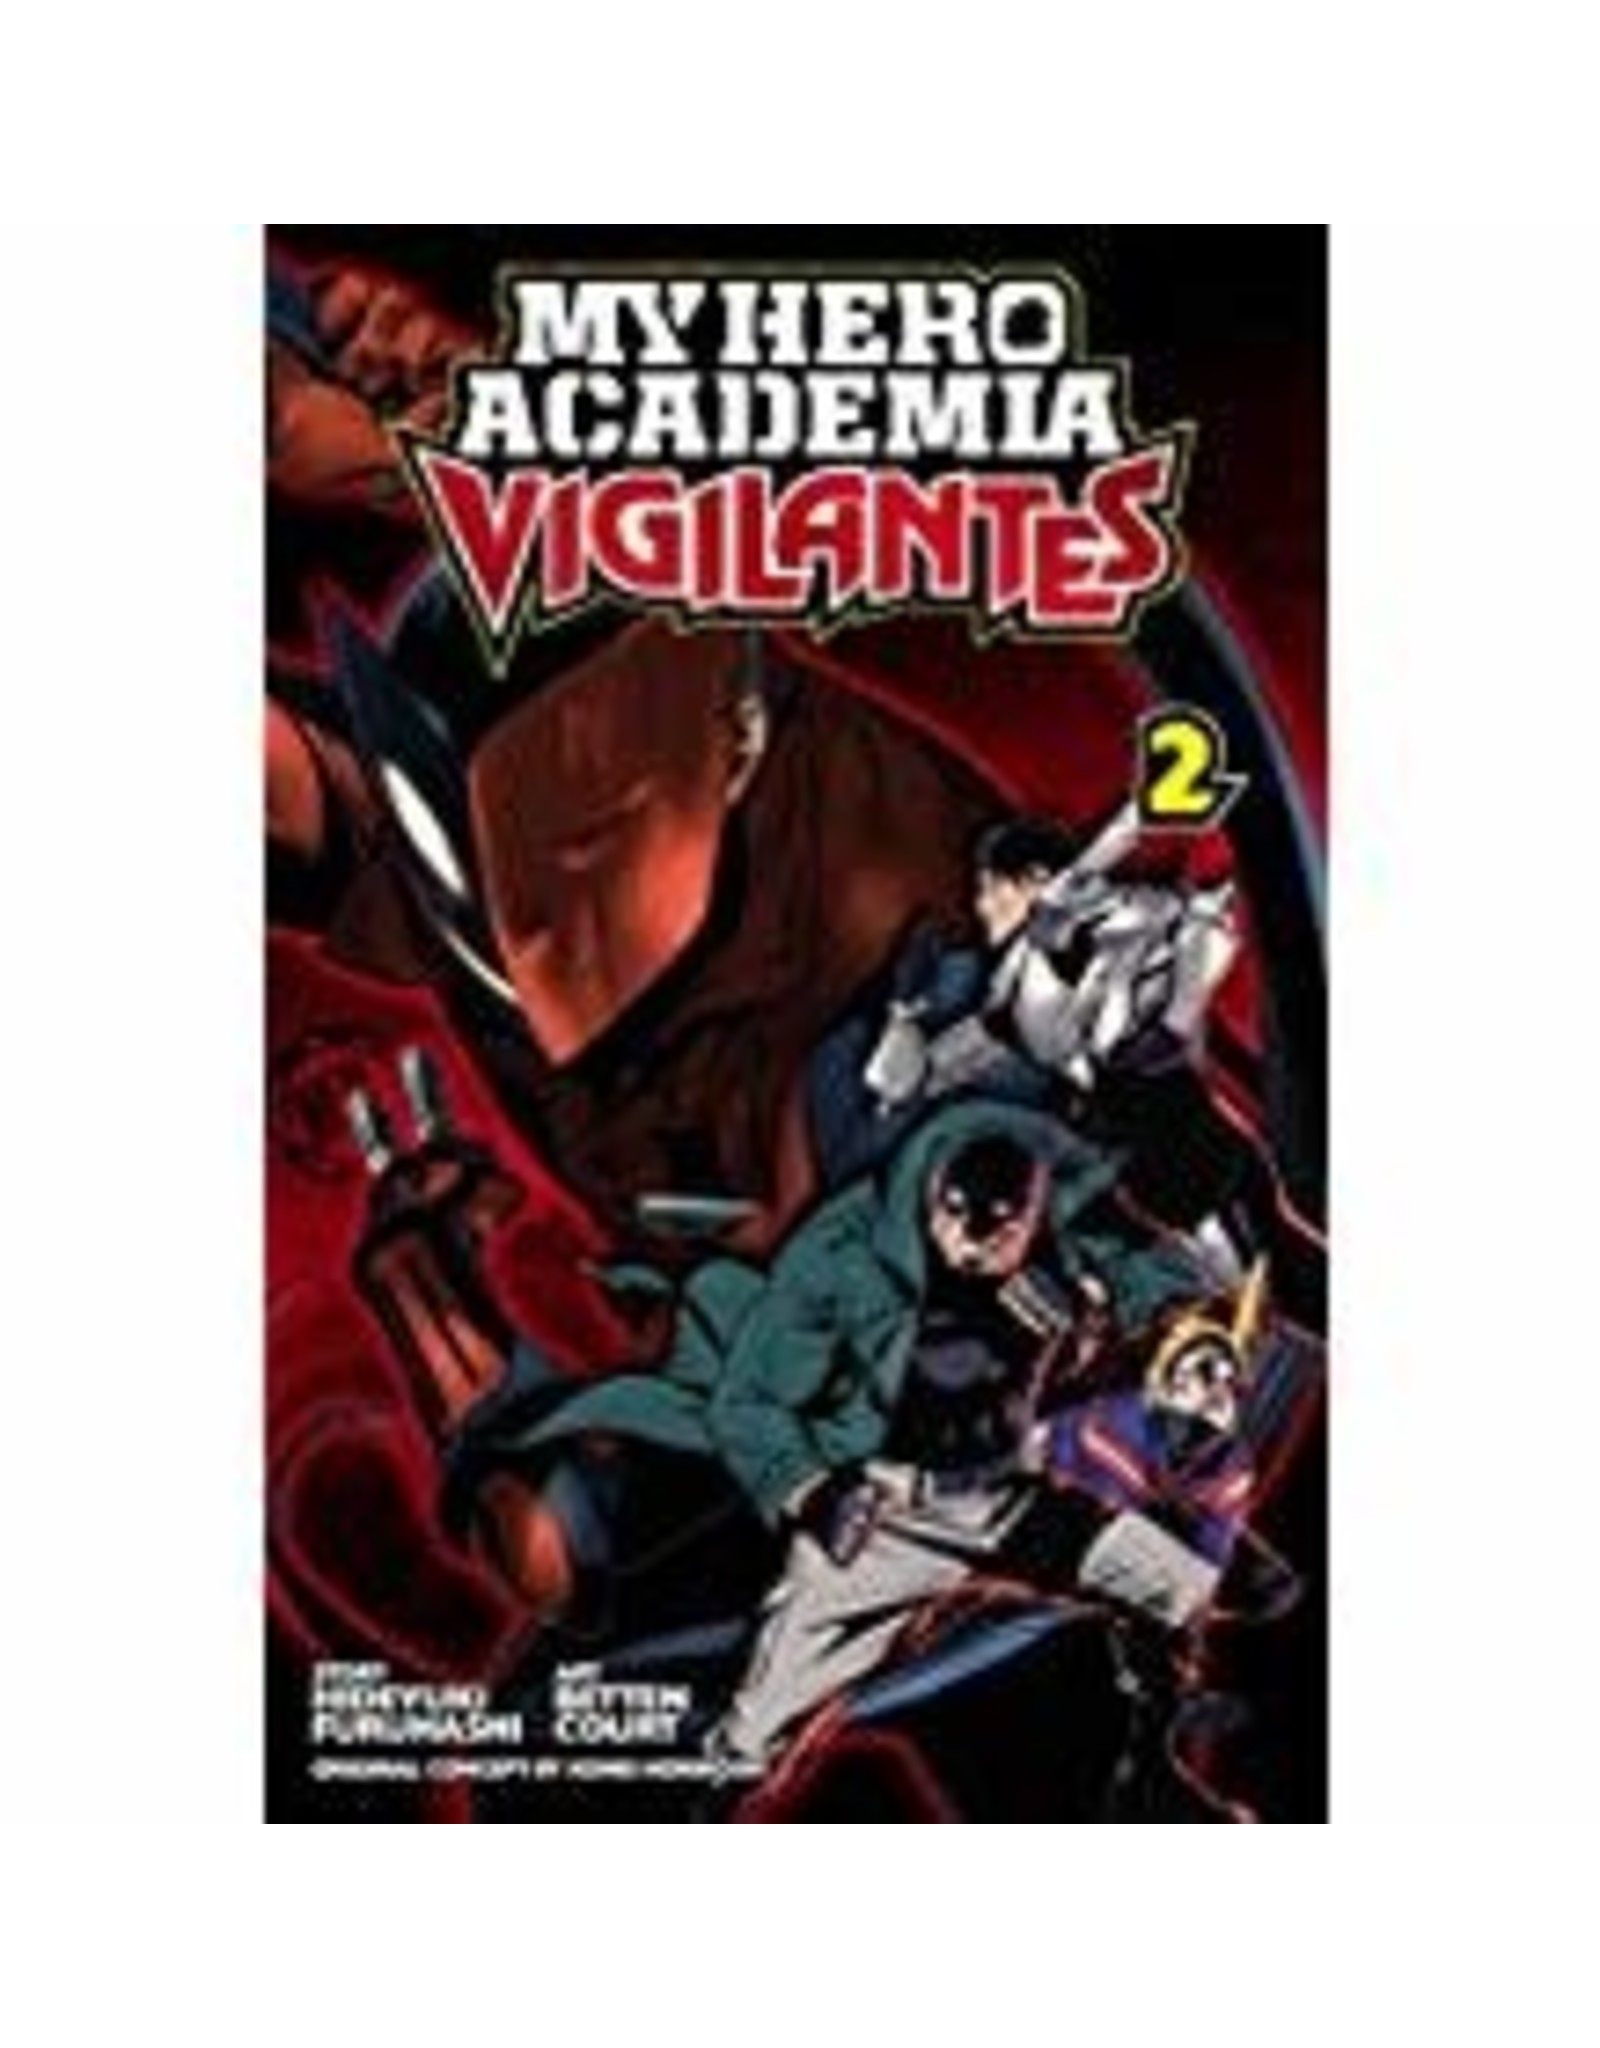 My Hero Academia: Vigilantes 2 (English Version)